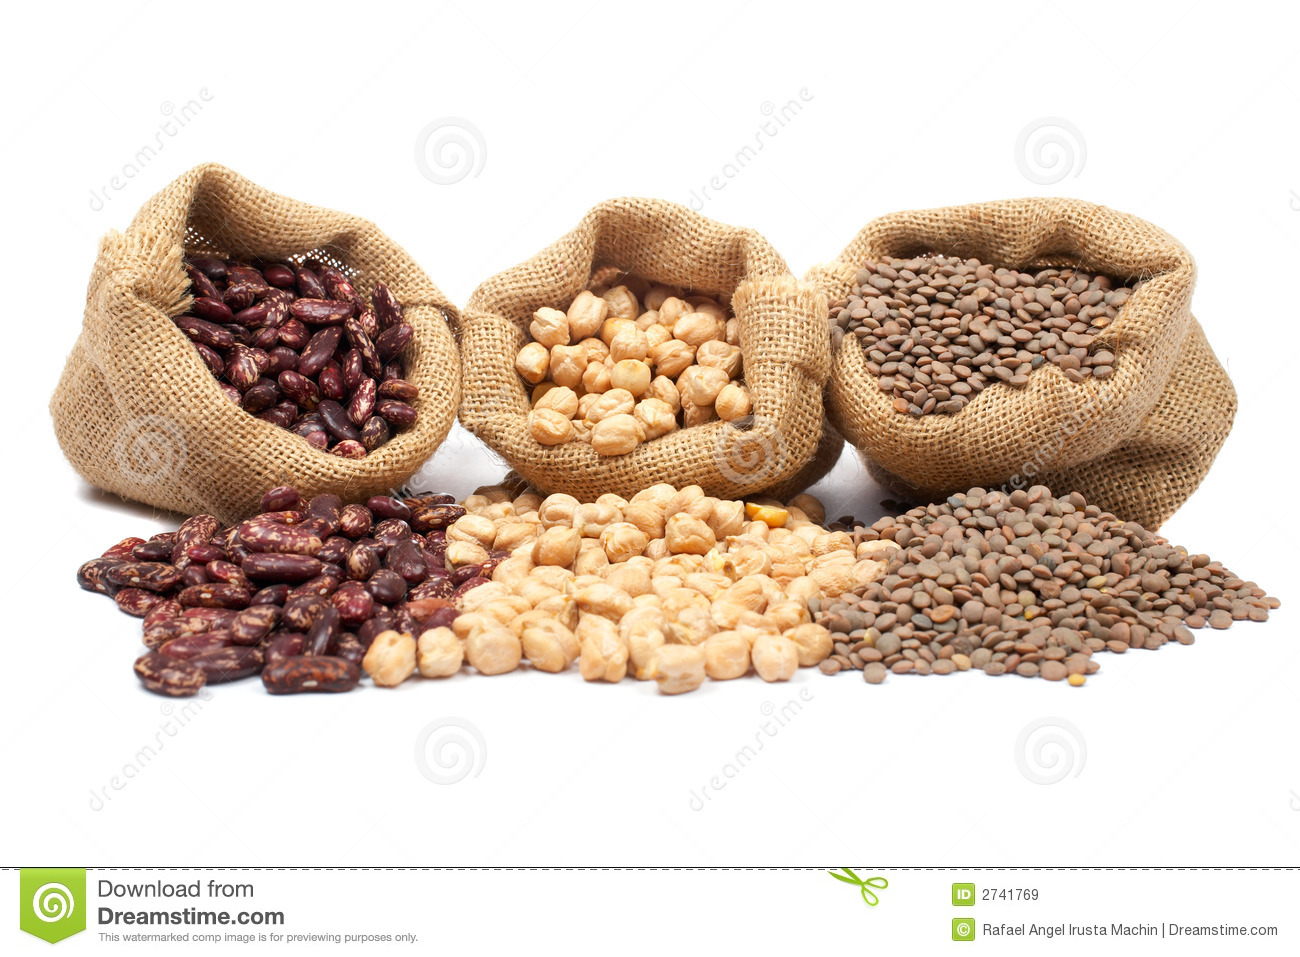 Lentils, chickpeas and beans